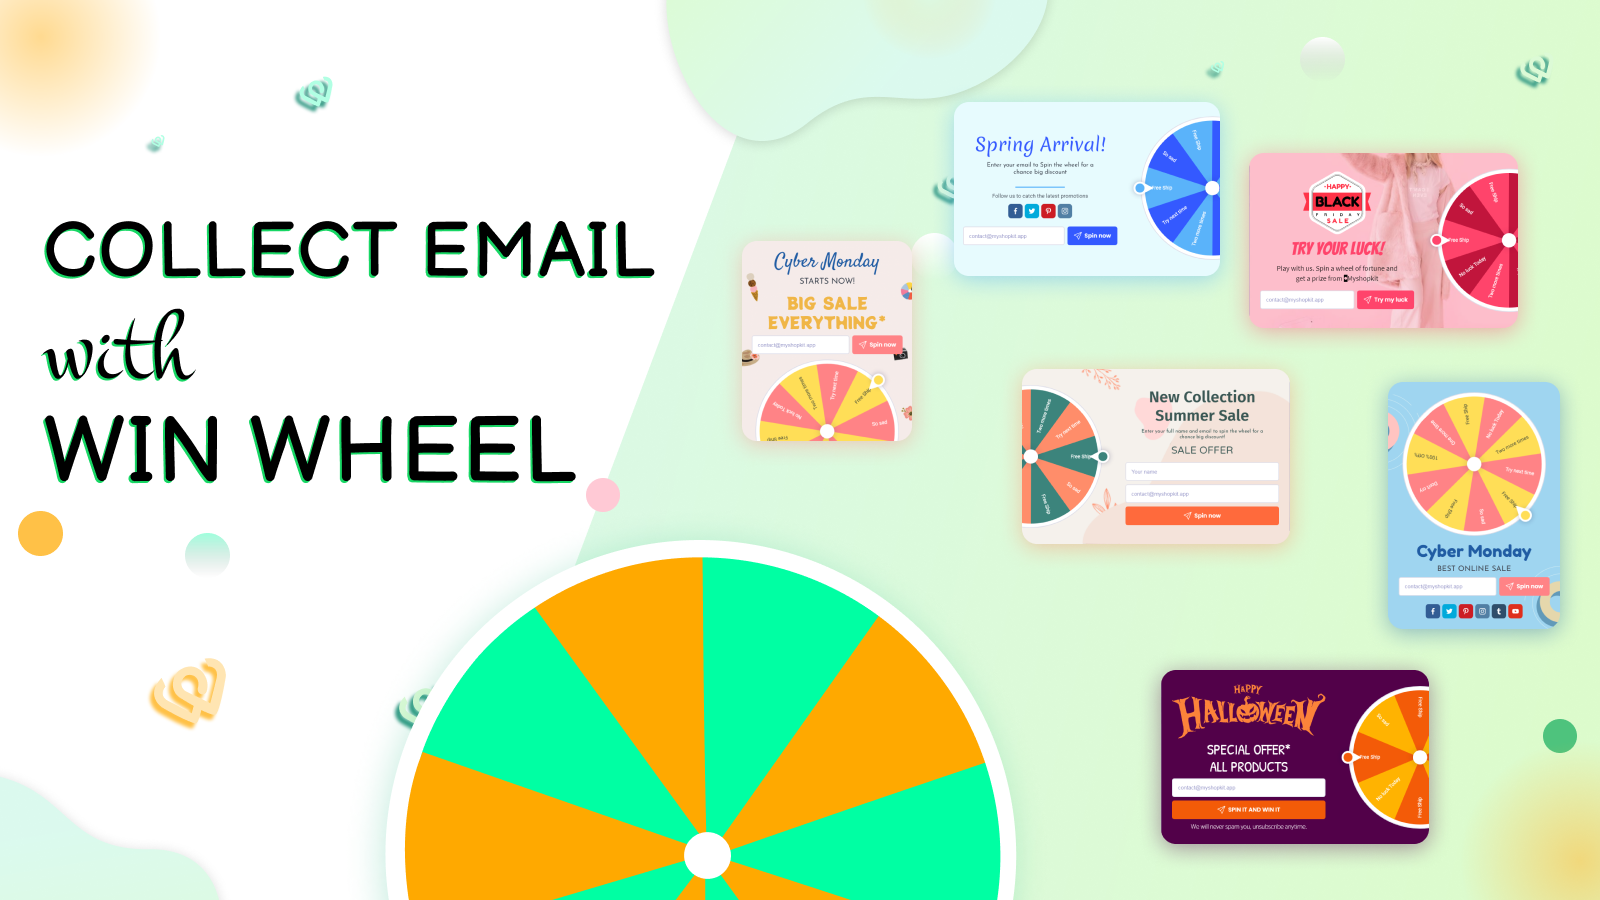 Collect Emails With Win Wheel